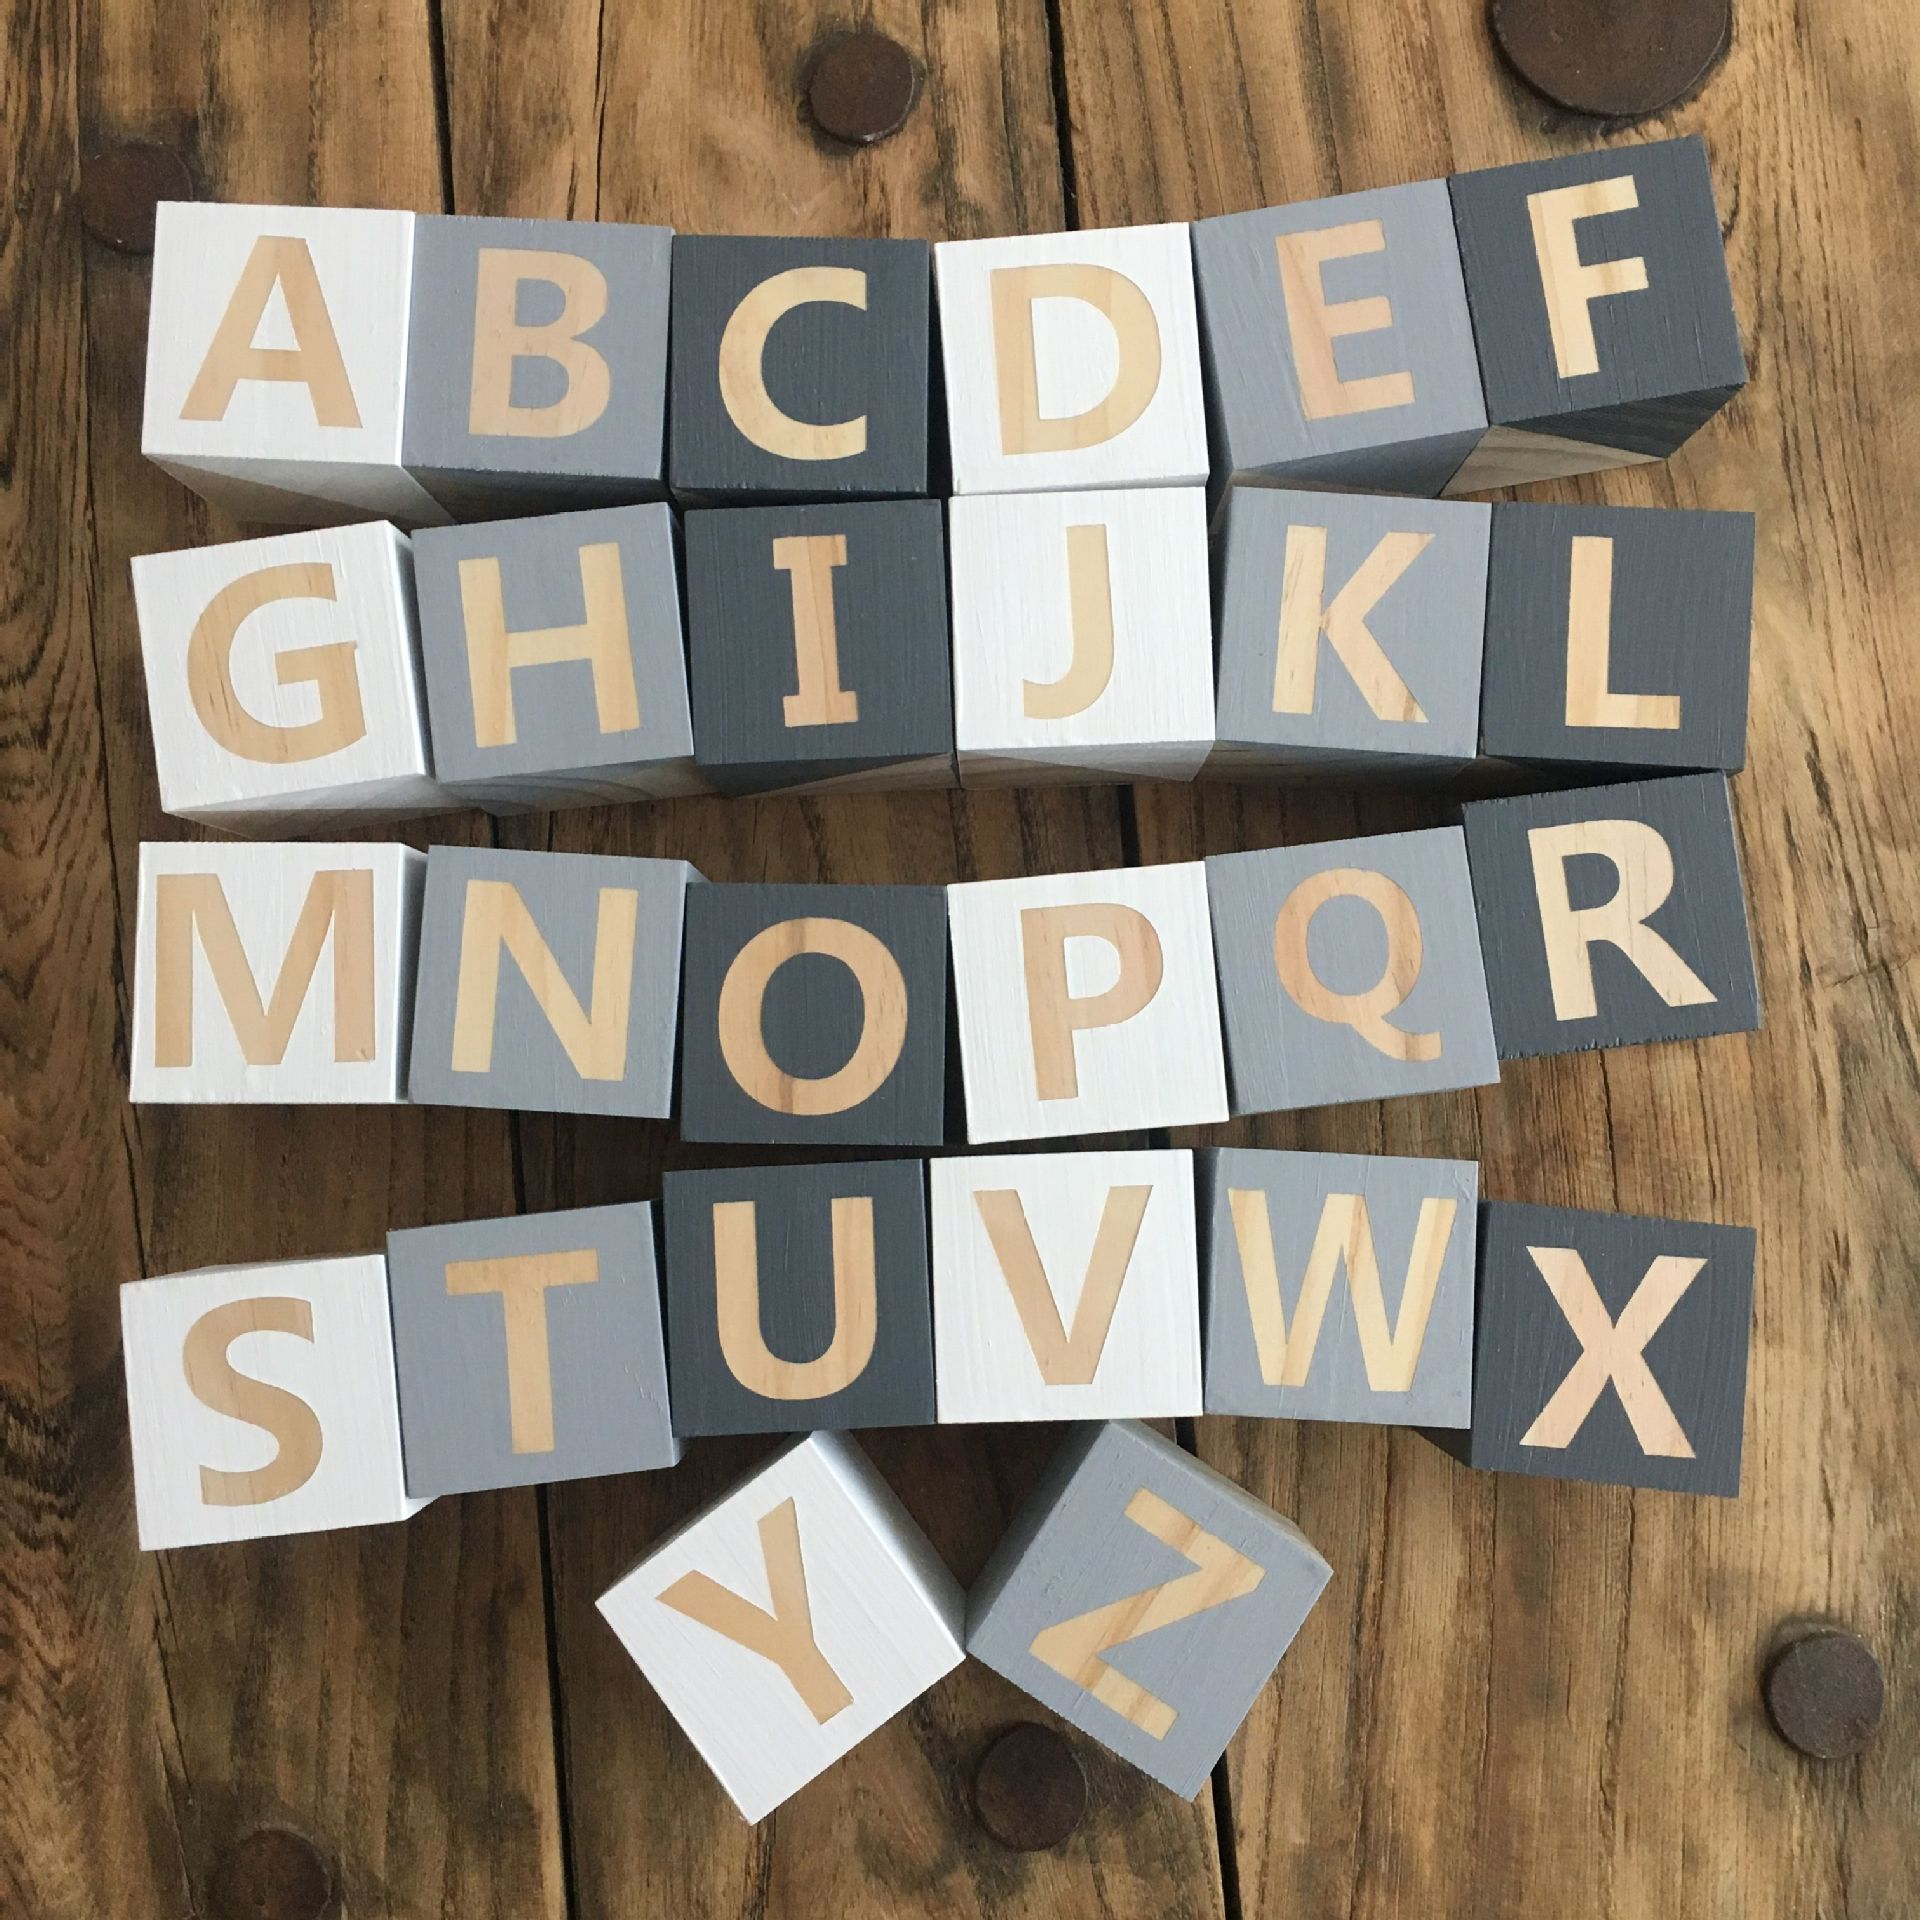 Nordic Style Wooden Alphabet Letters